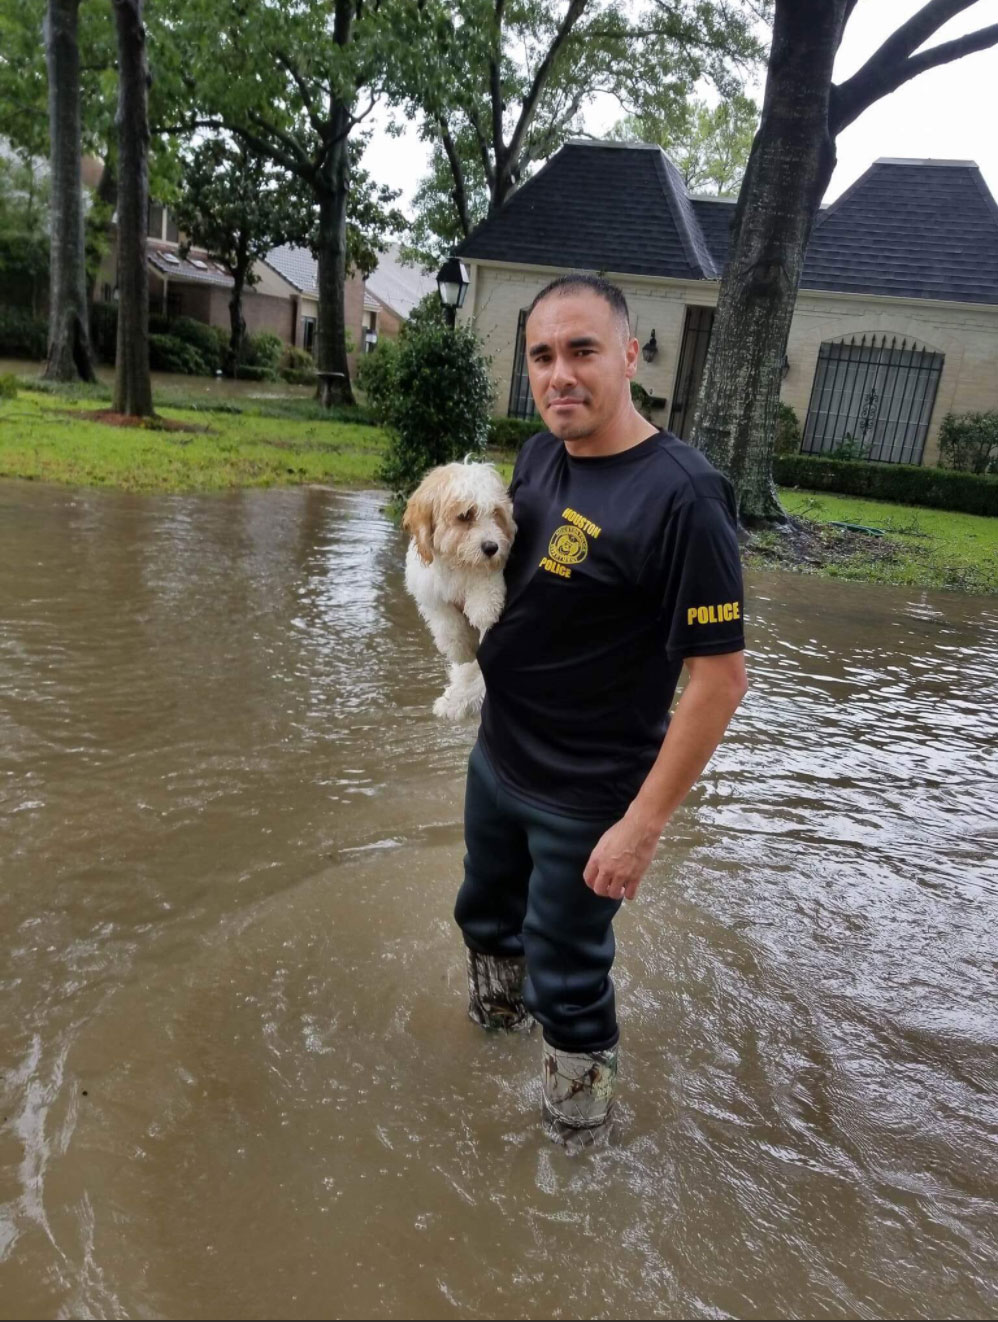 <div class='meta'><div class='origin-logo' data-origin='none'></div><span class='caption-text' data-credit='houstonpolice/Twitter'>The Houston Police rescues a dog stranded by the flood.</span></div>